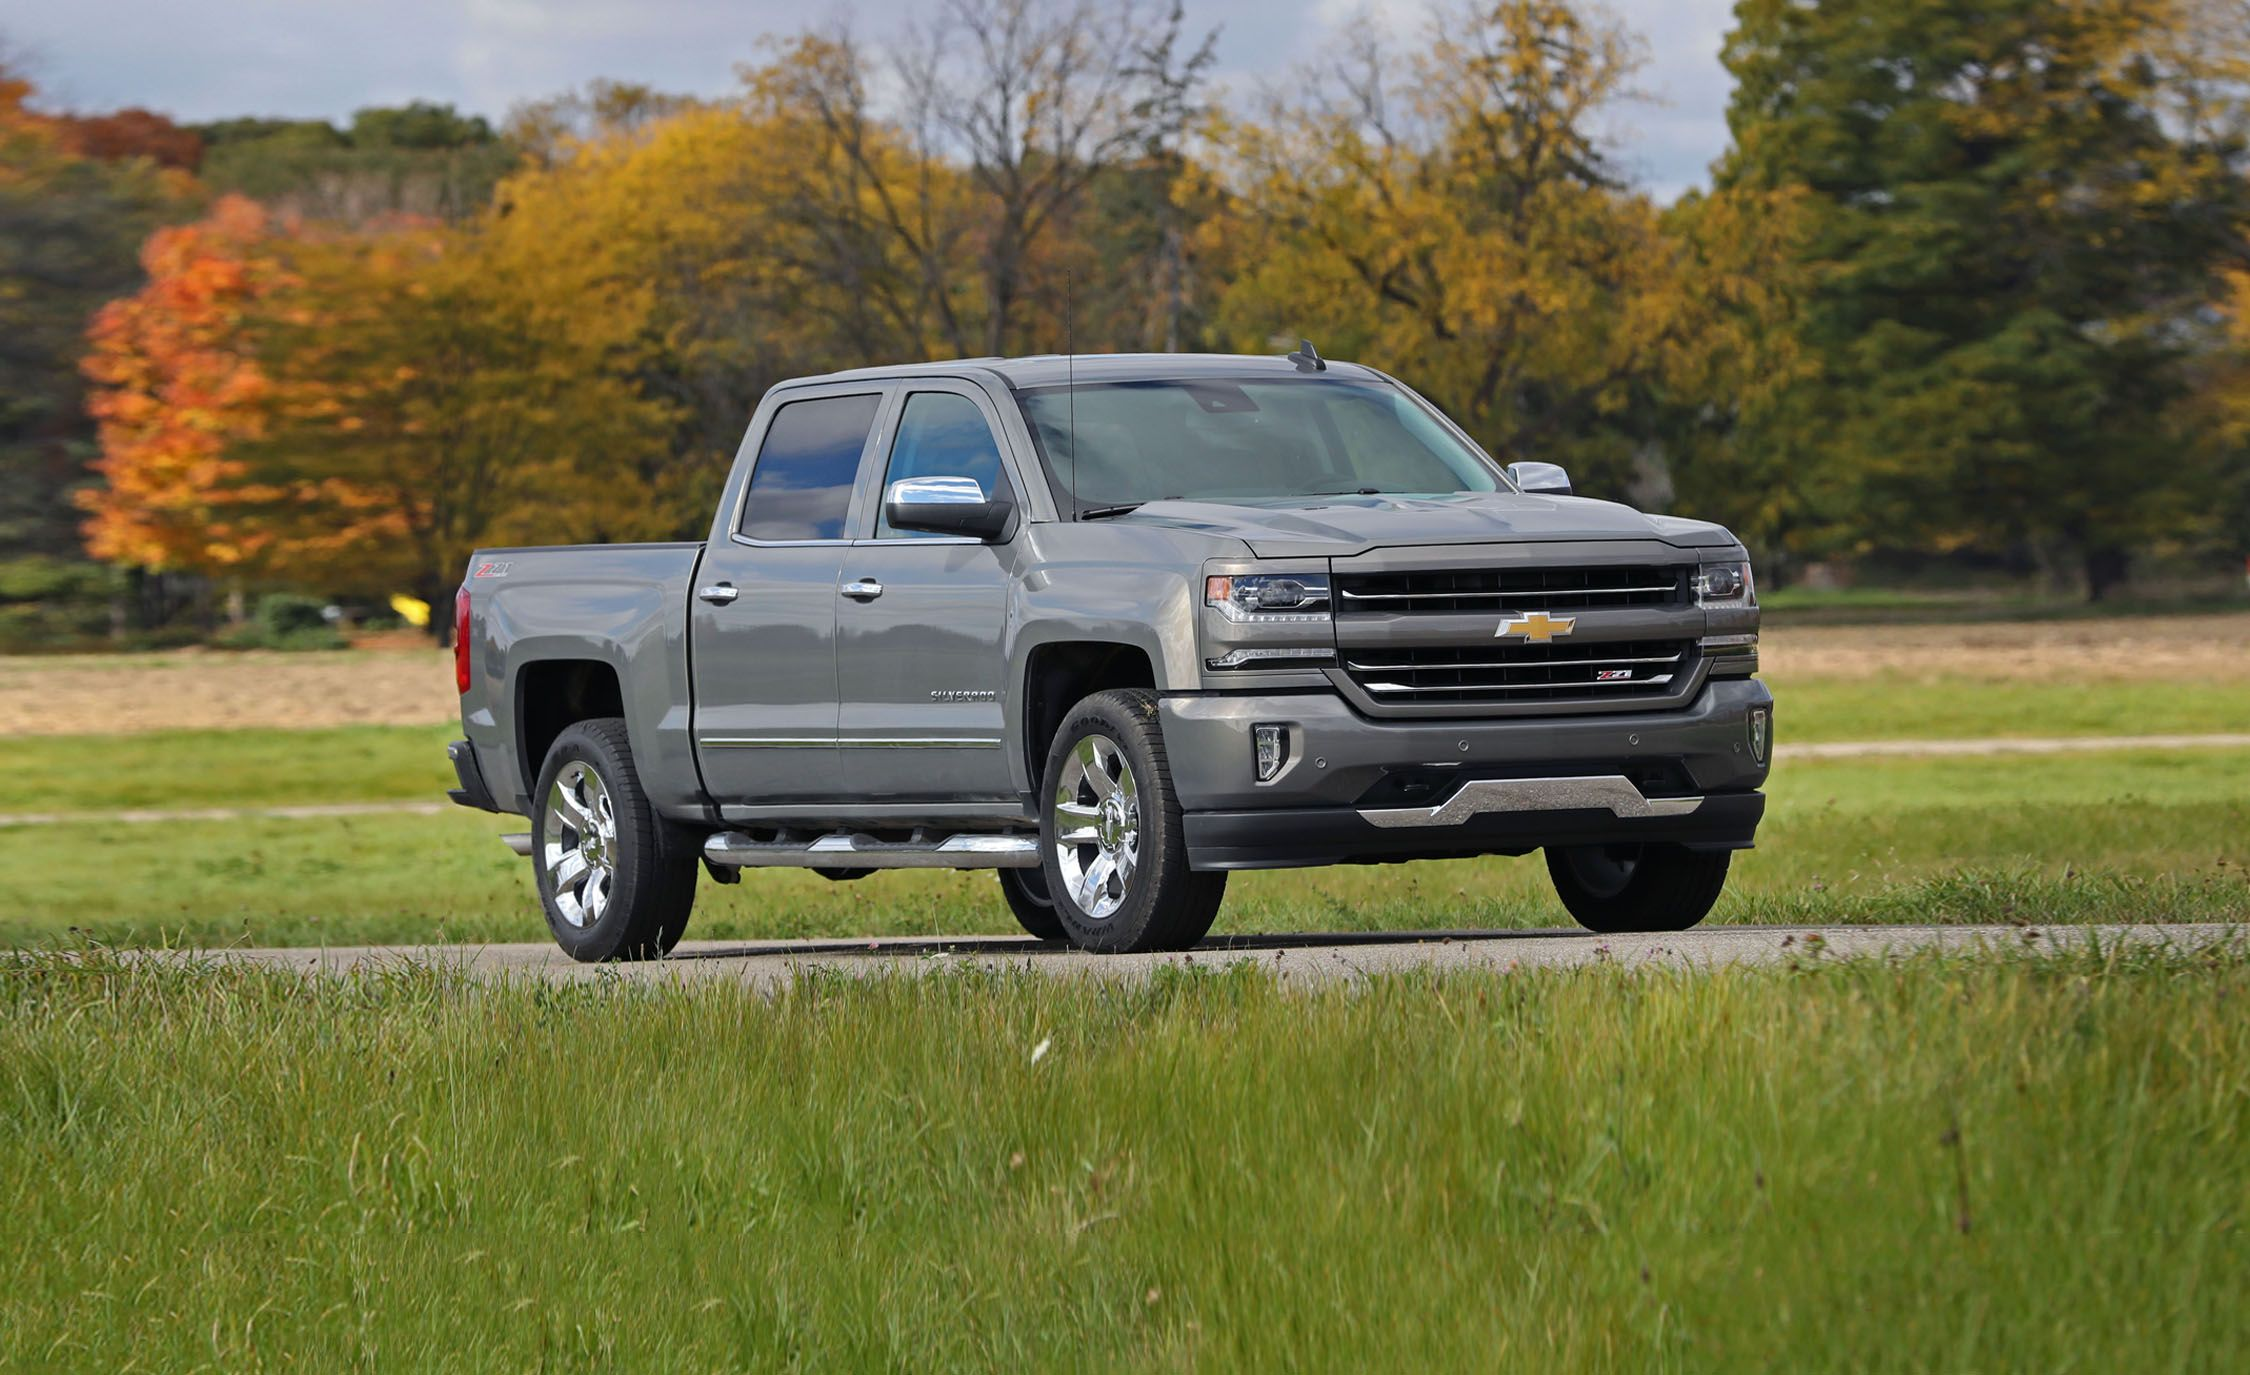 2018 Chevy Silverado Midnight Edition Price >> 2018 Chevrolet Silverado 1500 | In-Depth Model Review | Car and Driver